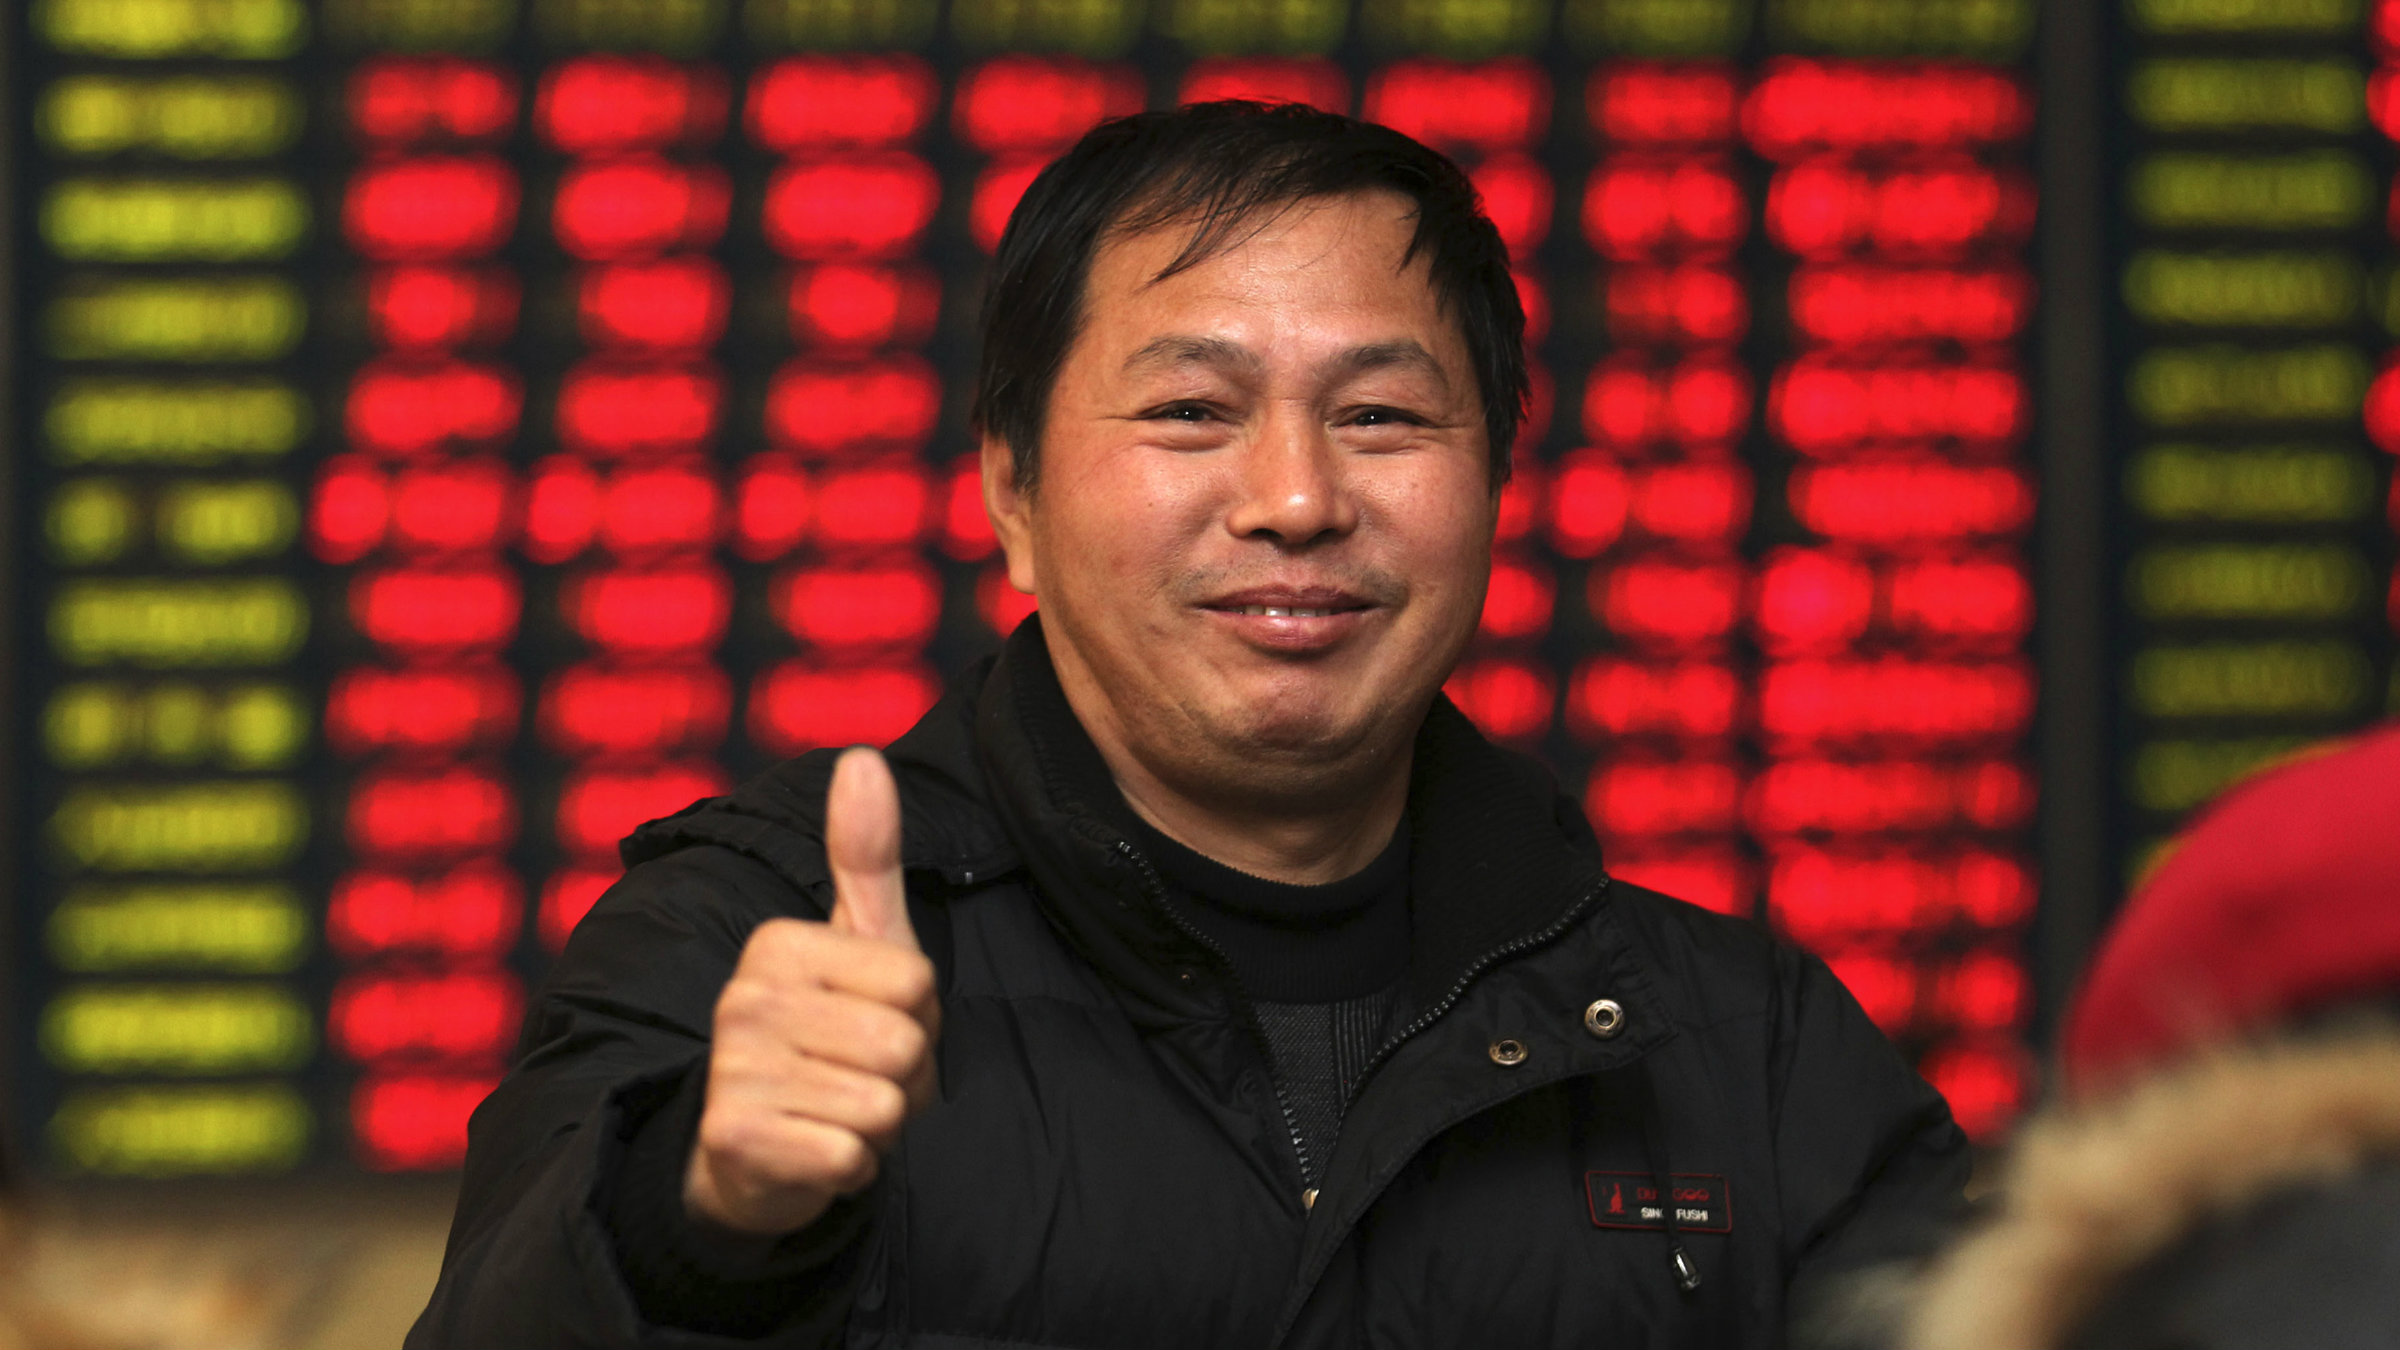 An investor gives a thumbs up as he talks to other investors in front of an electronic board showing stock information, filled with red figures indicating rising prices, at a brokerage house in Nantong, Jiangsu province.